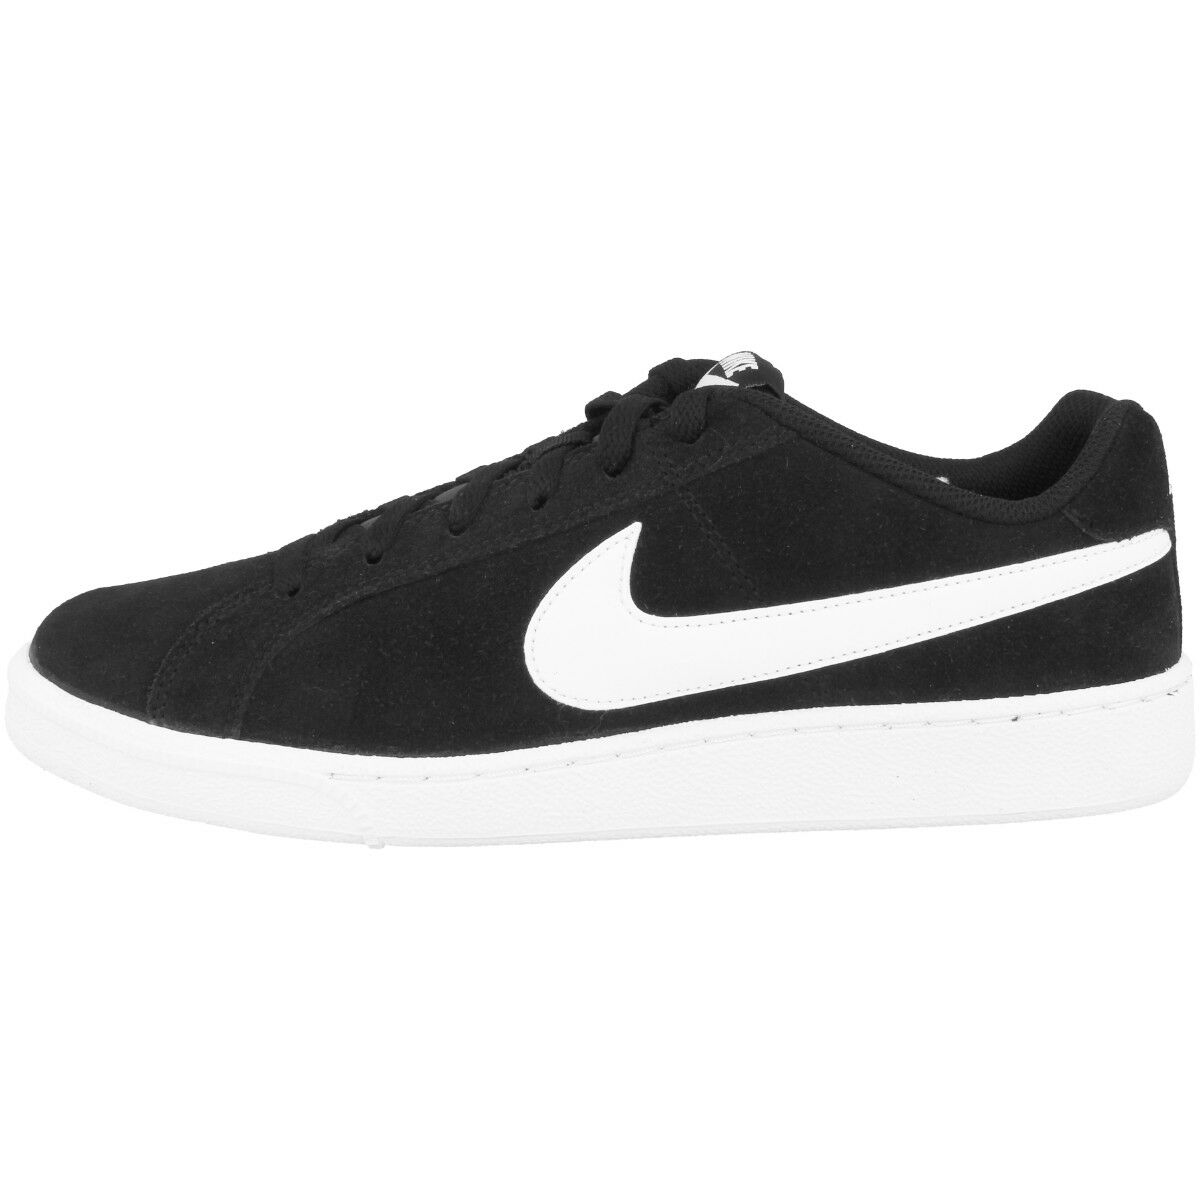 Nike Court Royale Suede Schuhe Retro Sneaker black white Force Son 819802-011